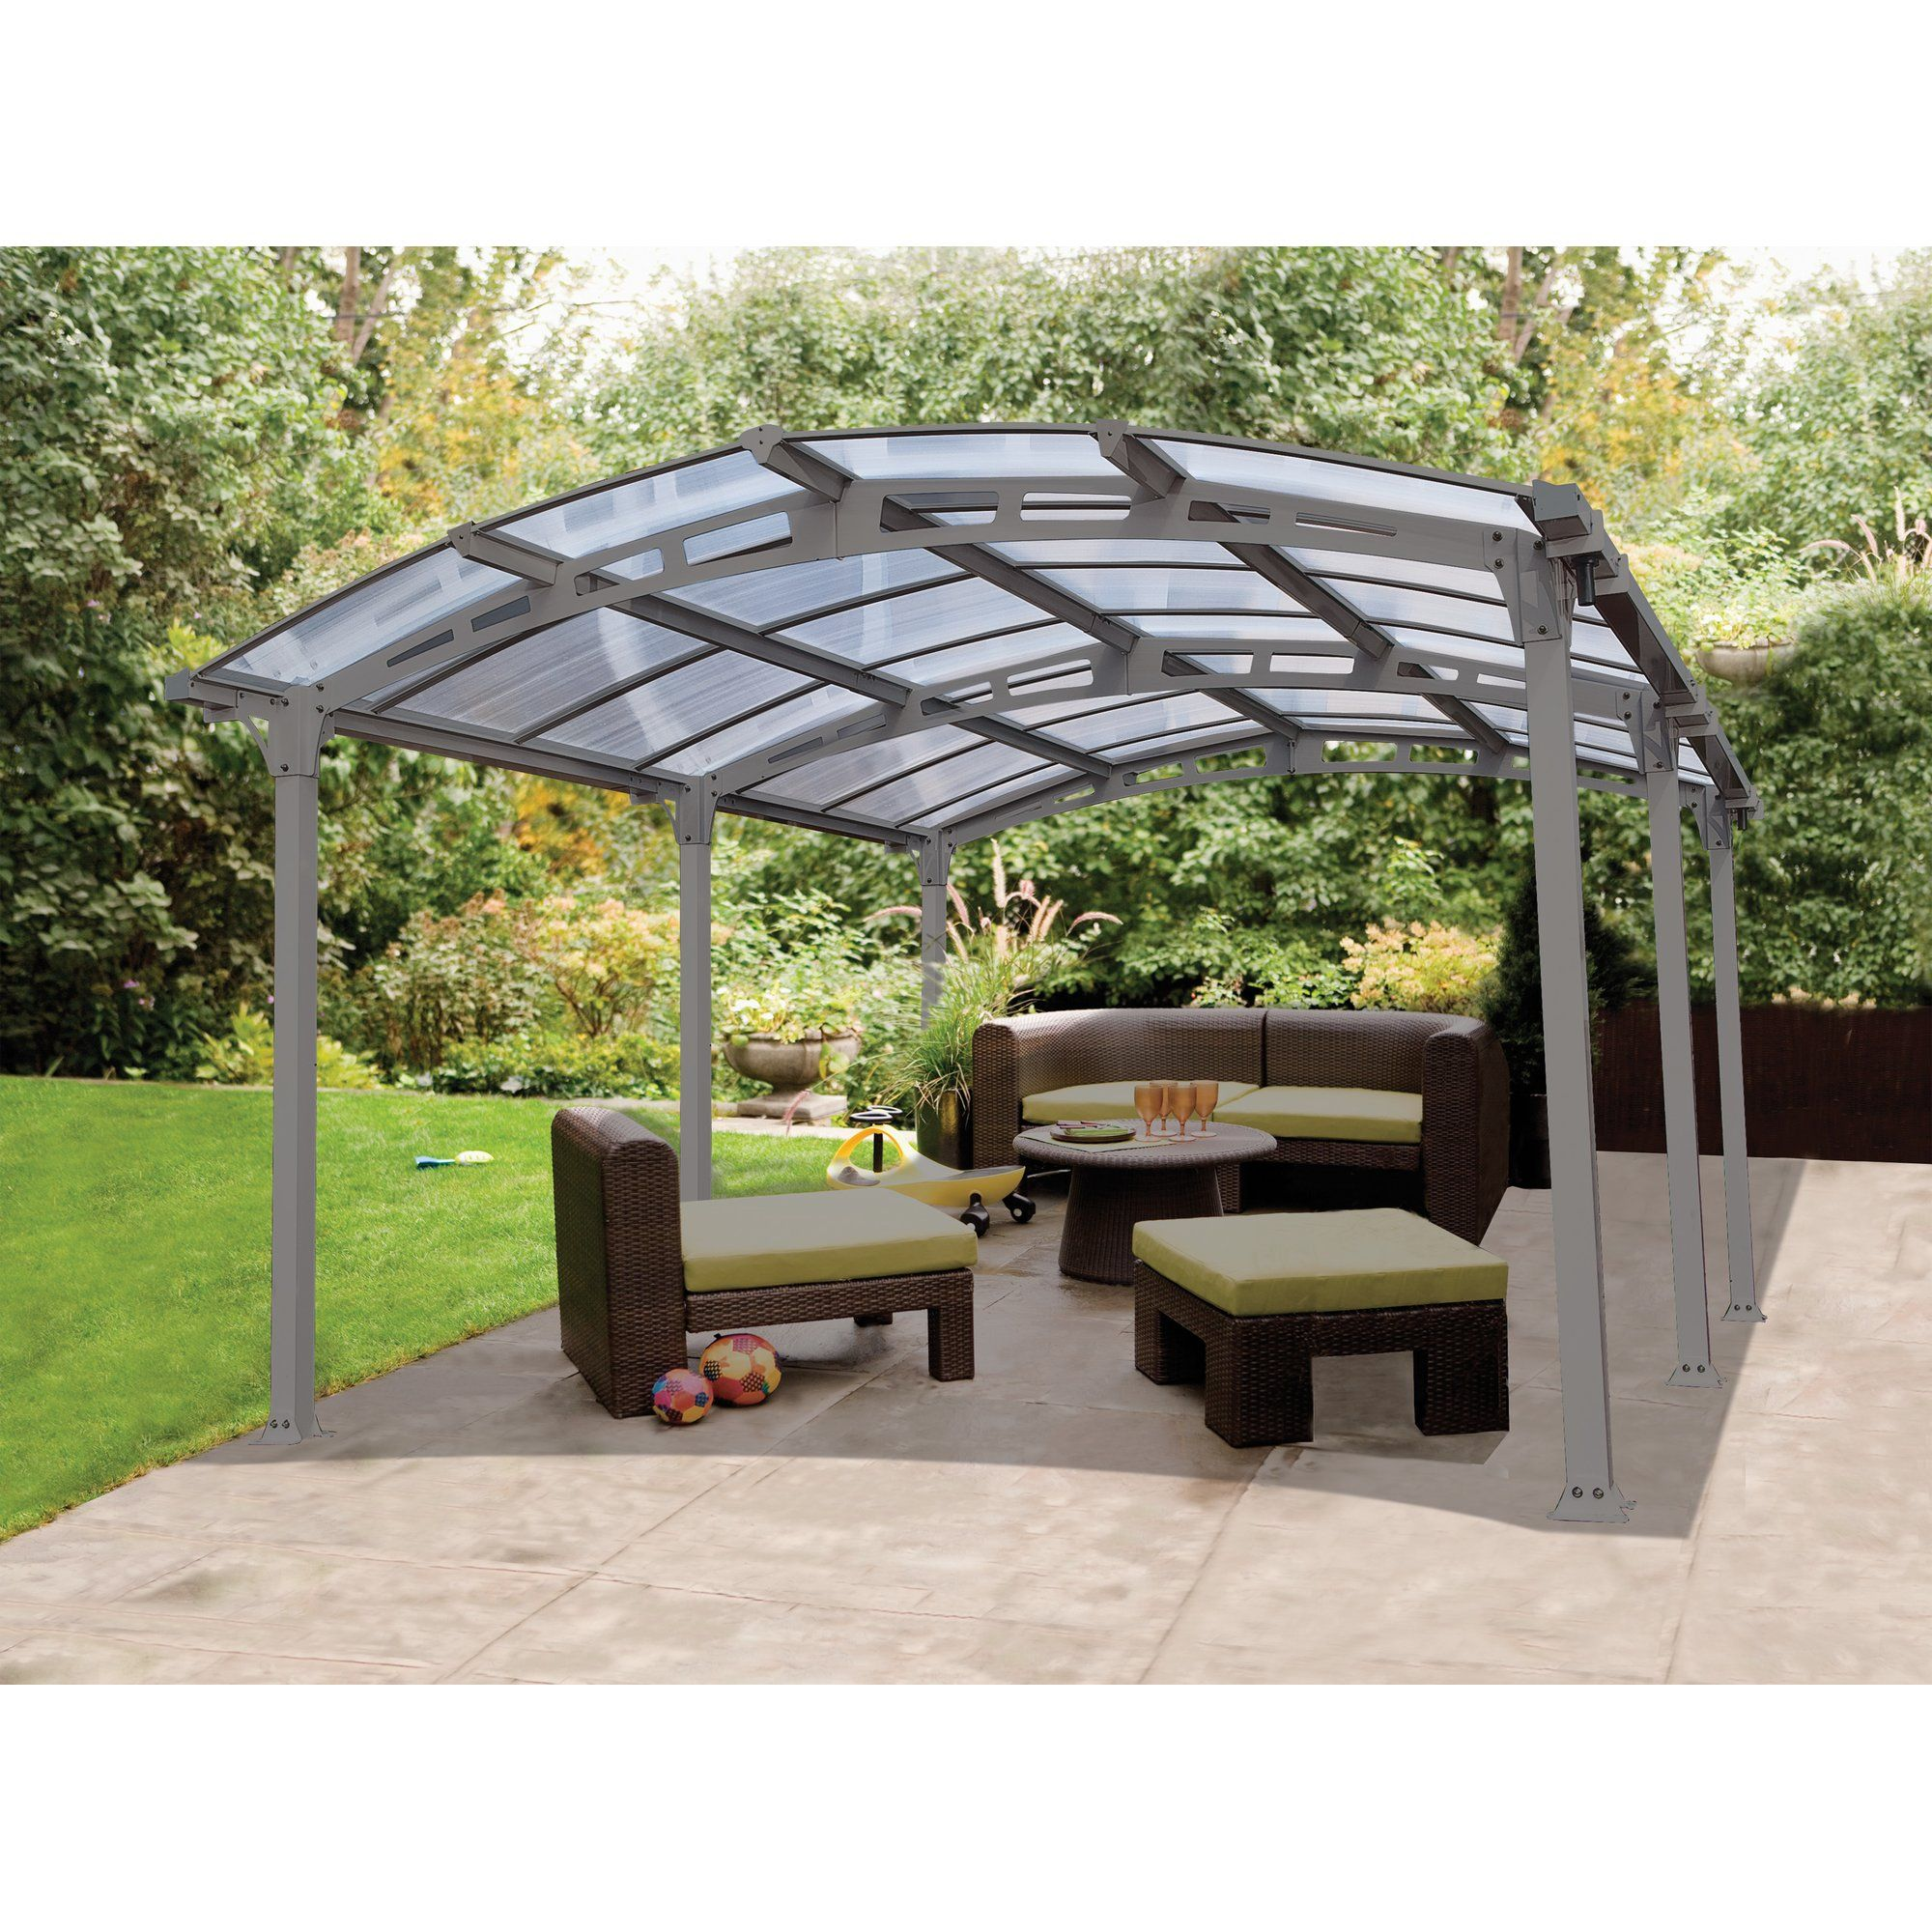 Arcadia Ft W x Ft D Carport u Patio Cover garden